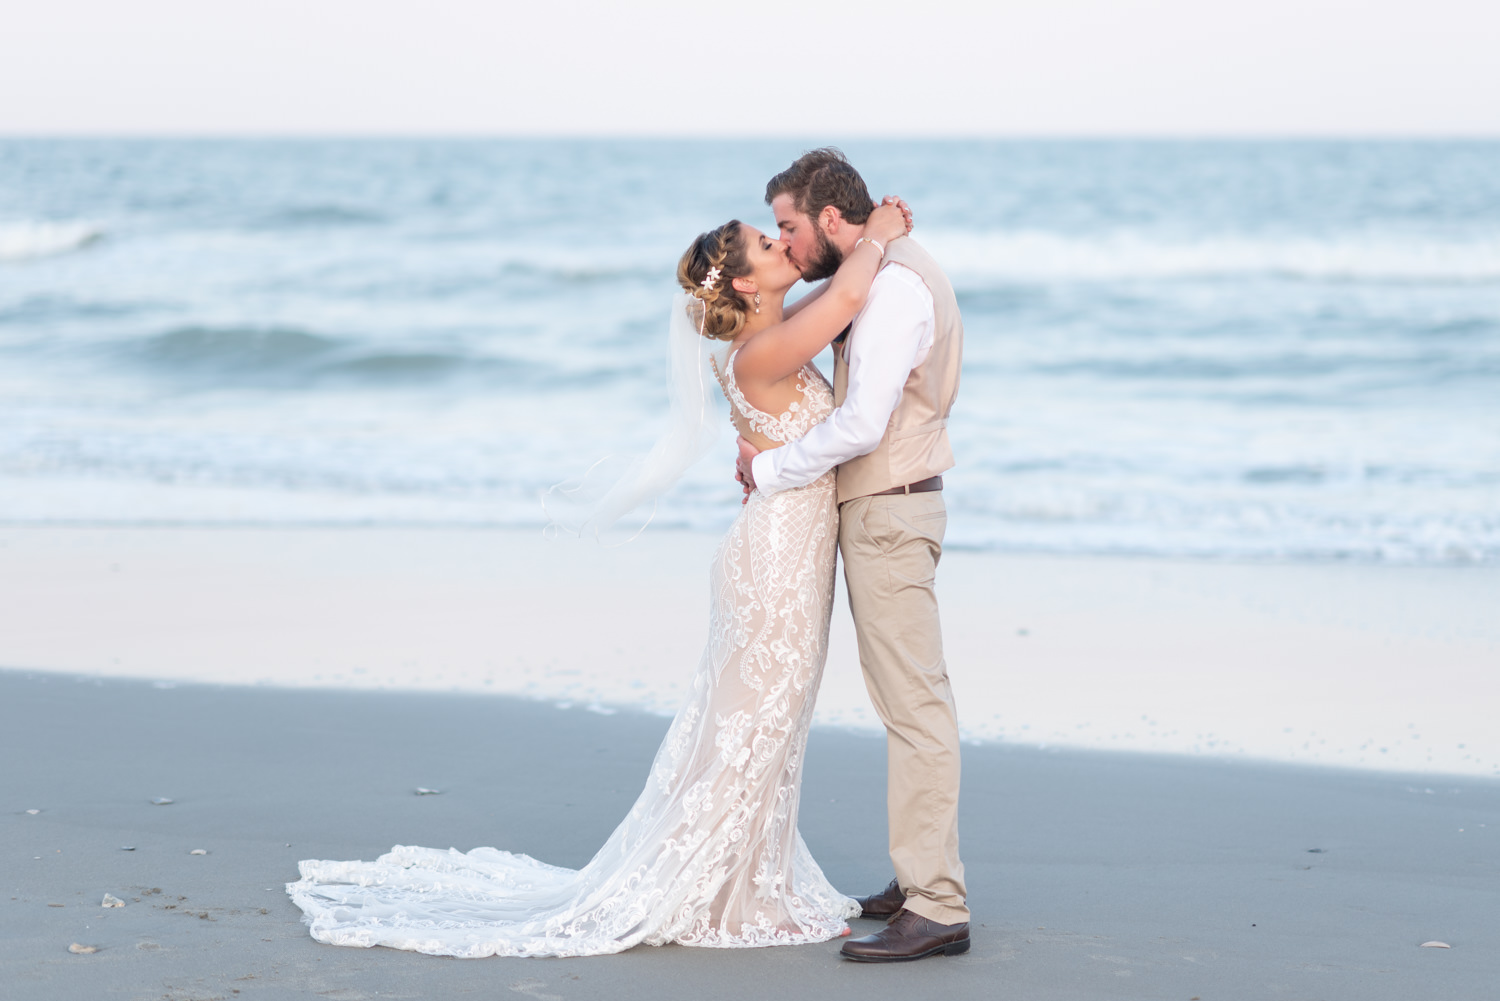 Kiss by the ocean - Grande Dunes Ocean Club - Myrtle Beach